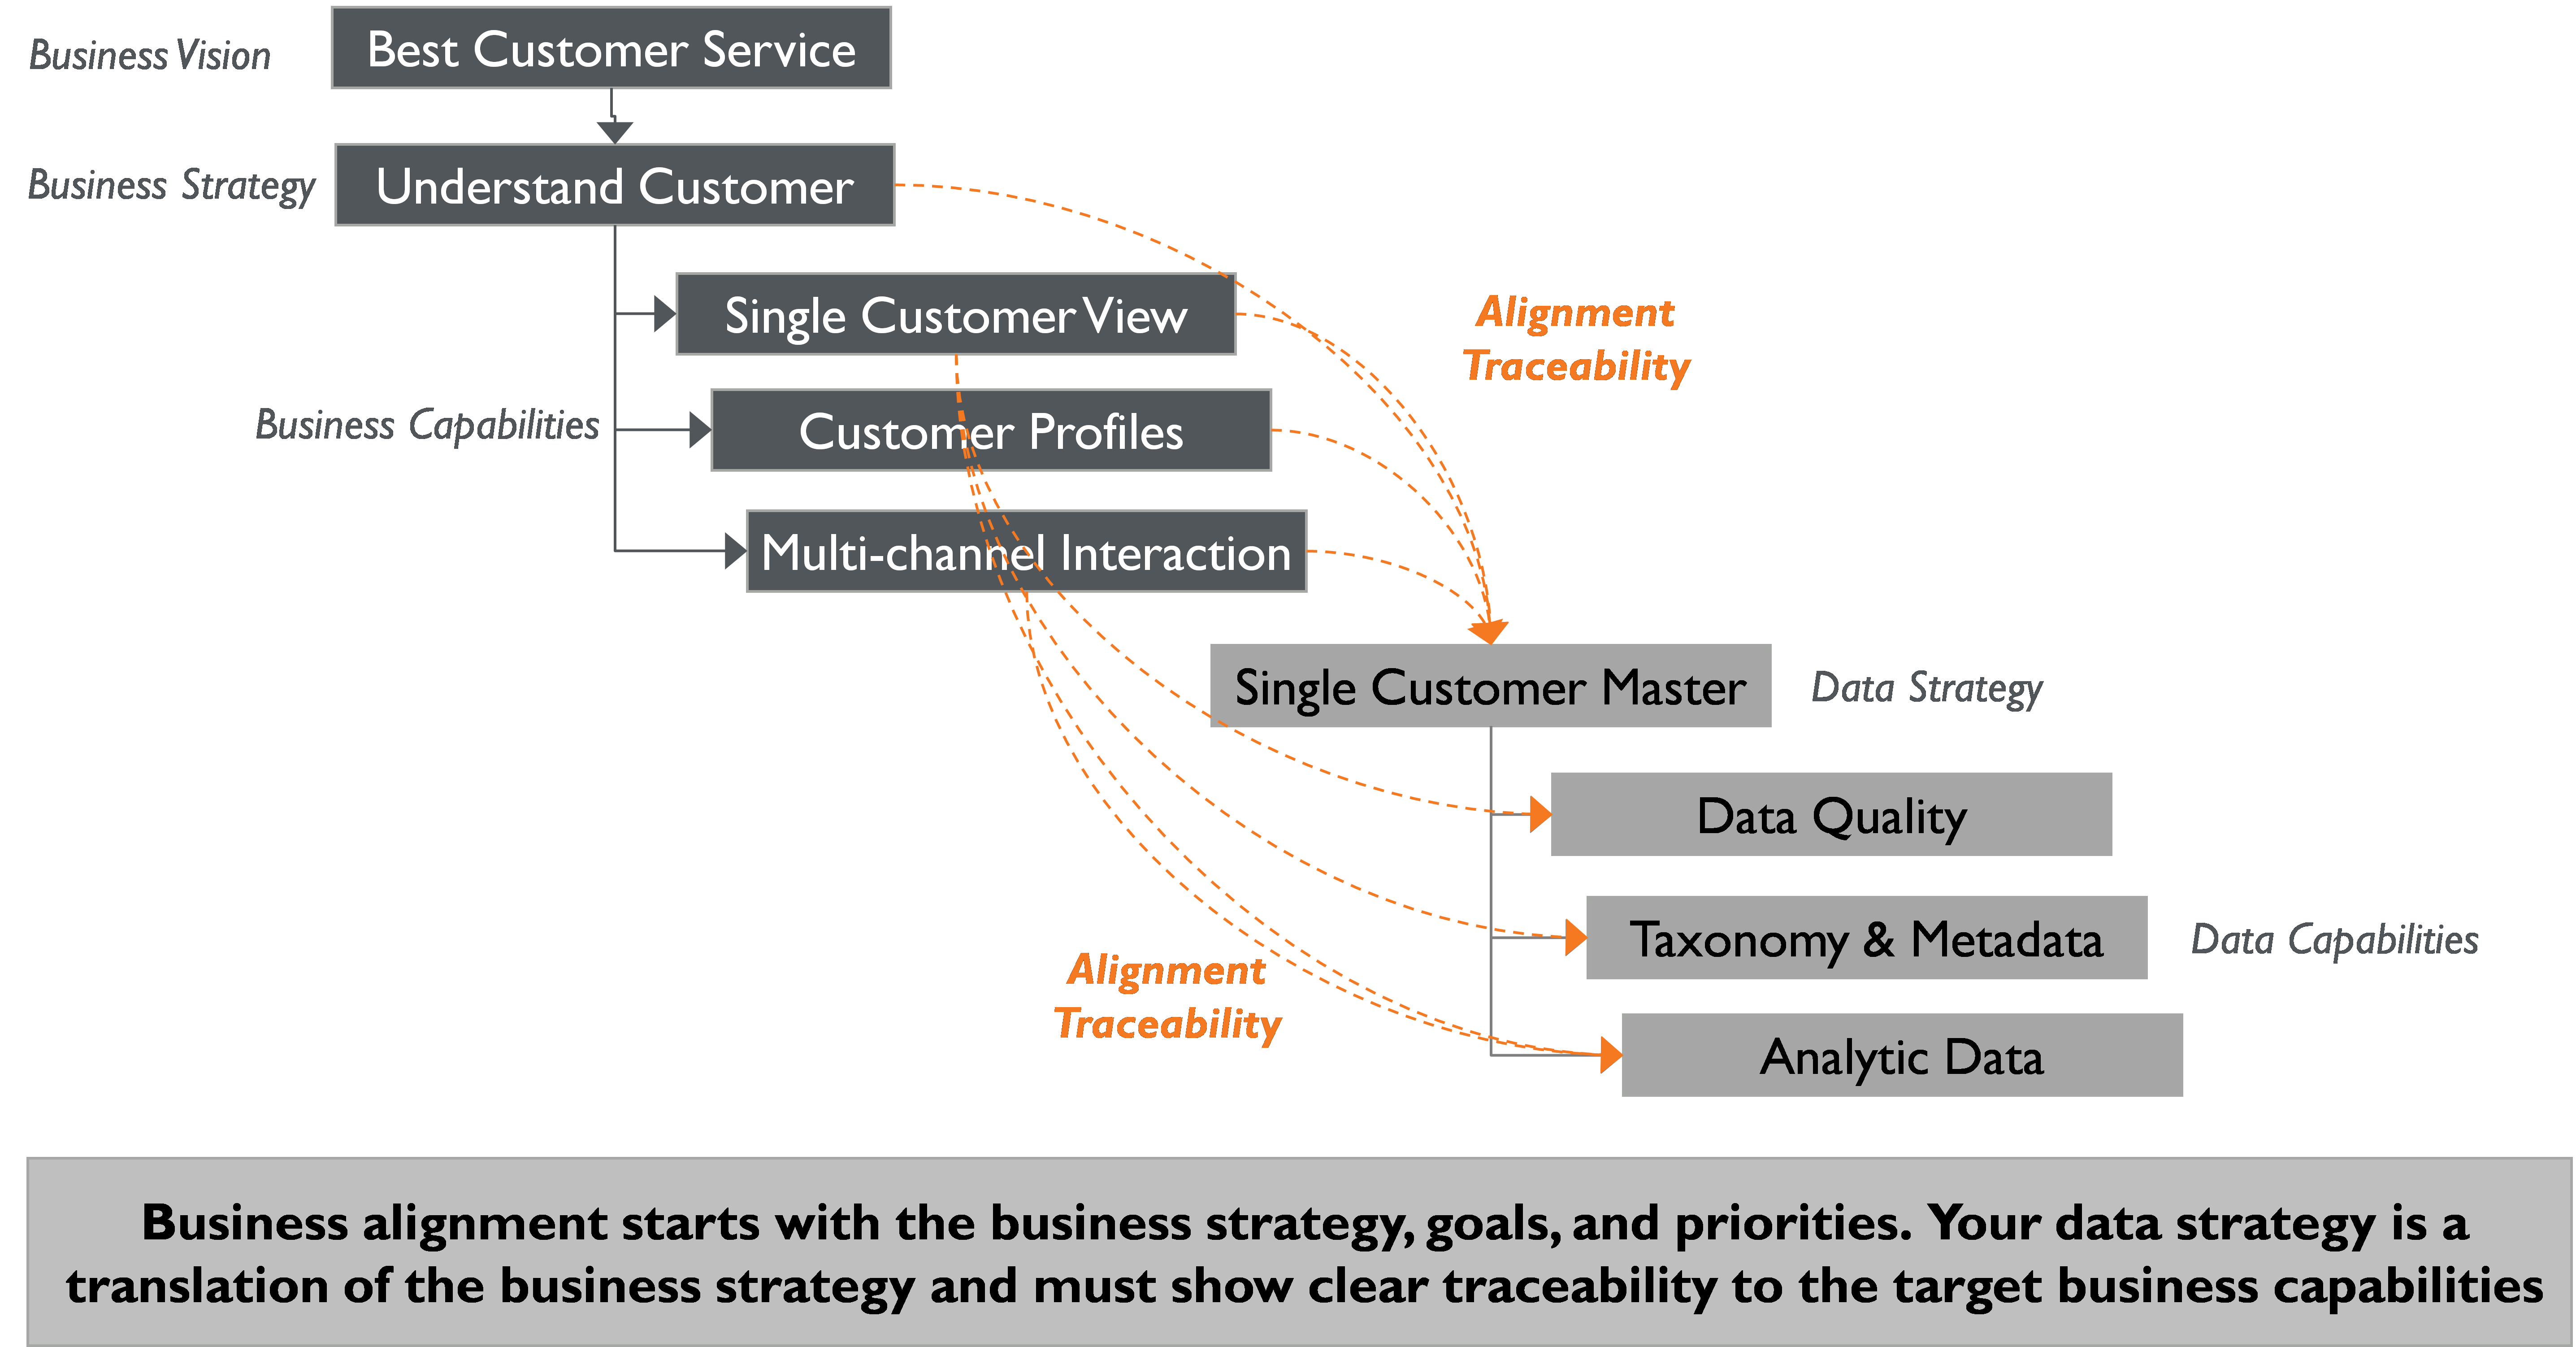 Single Customer View: Are you aligned?